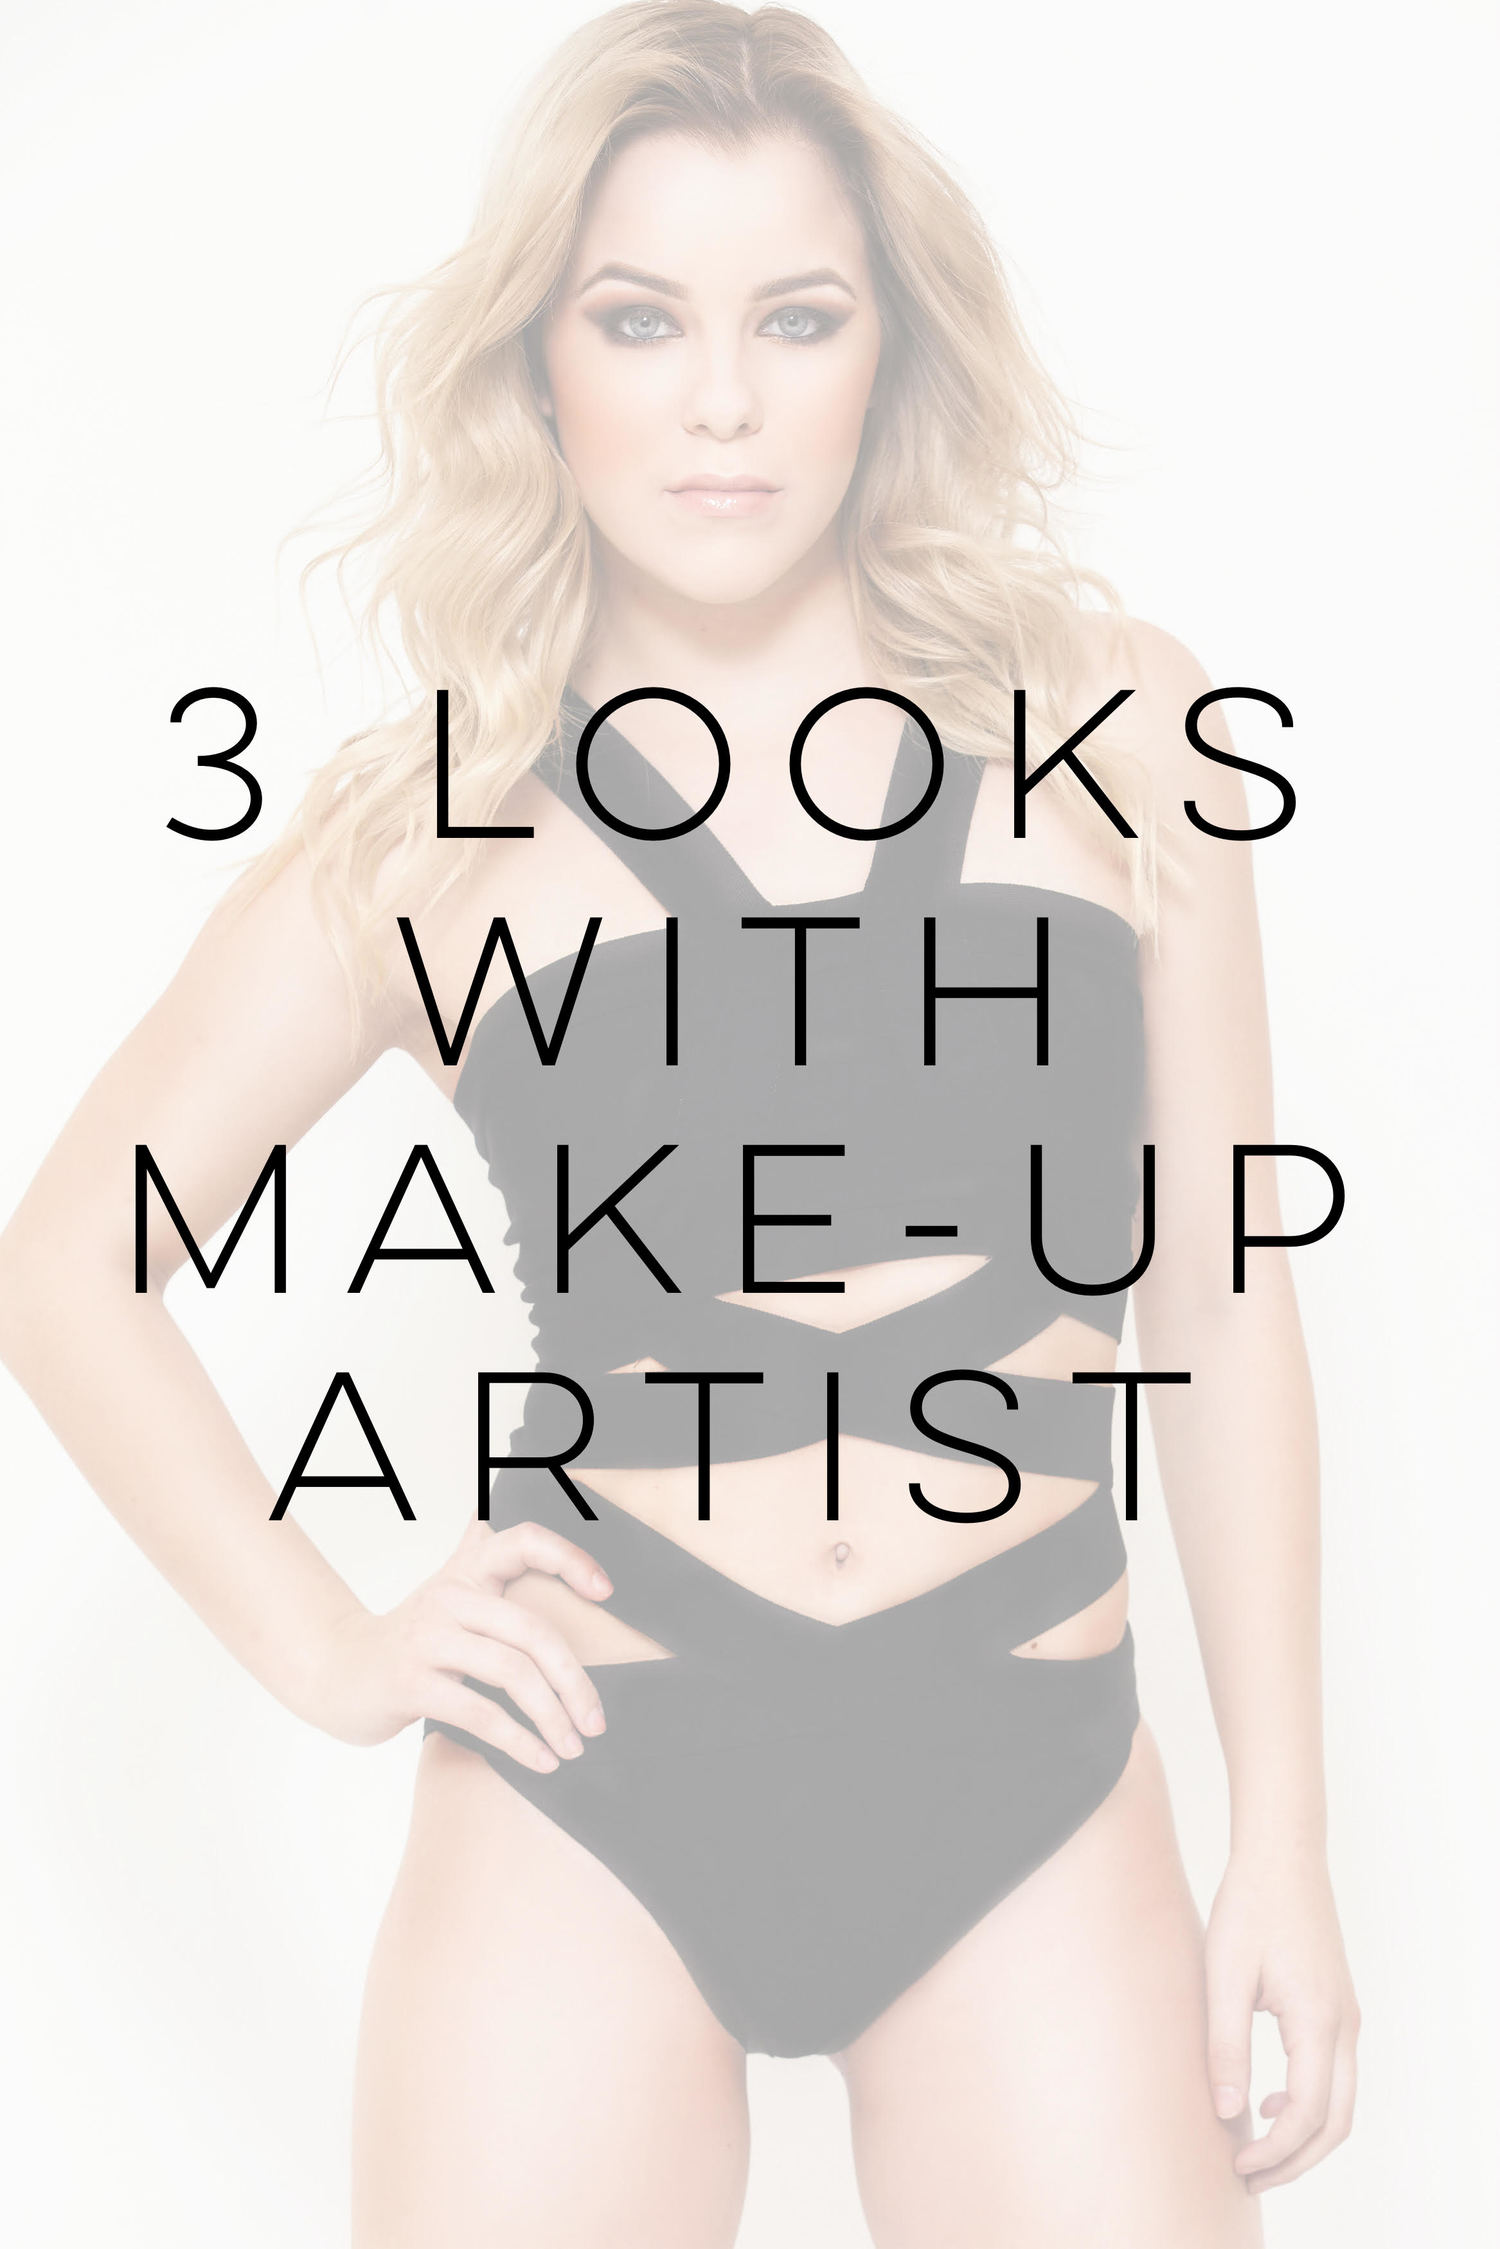 3 looks WITH make up artist $225